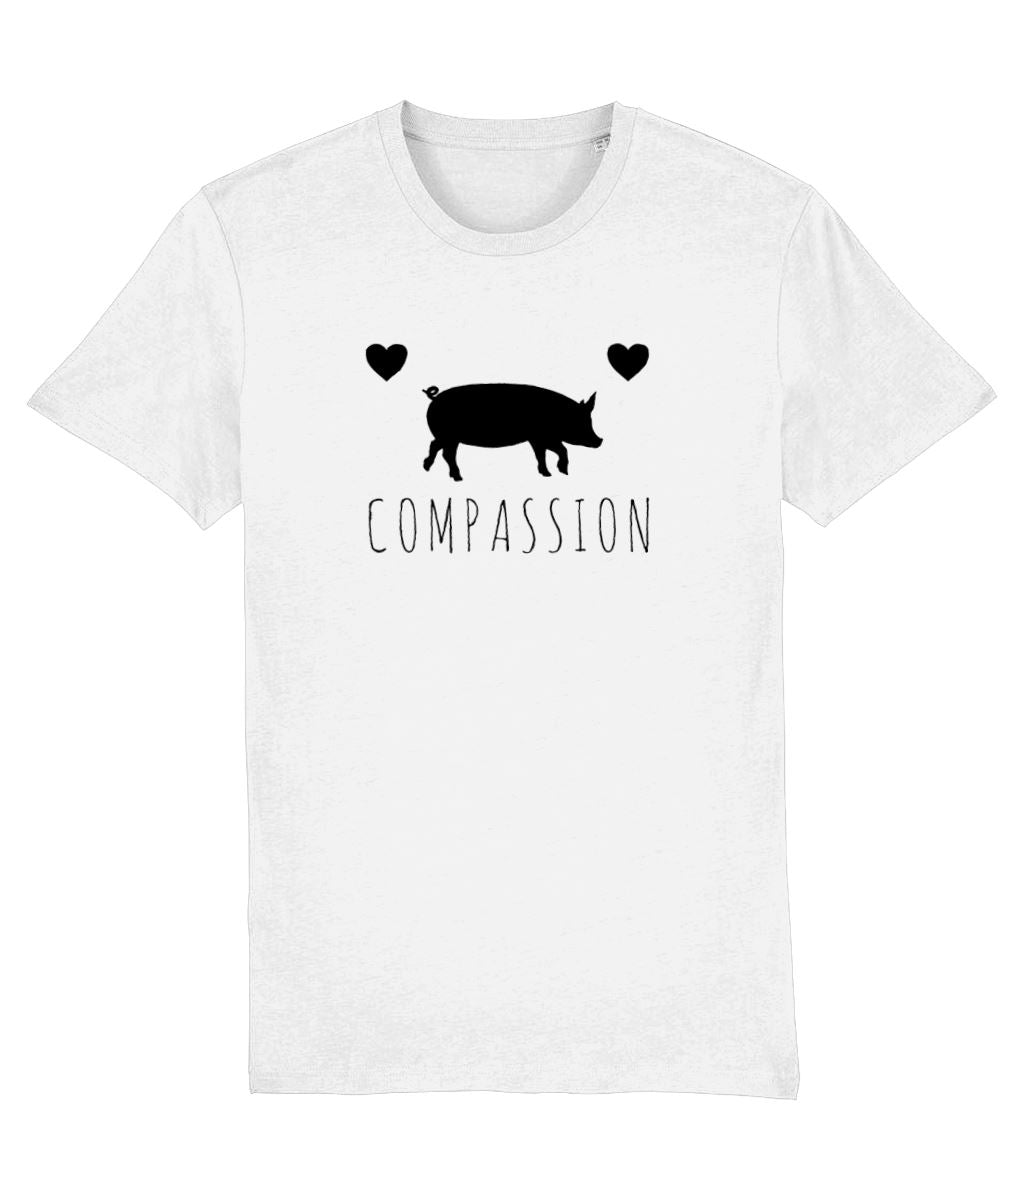 """Compassion"" Vegan T-Shirt - 100% Organic Cotton (Unisex) Clothing Vegan Original White XX-Small"